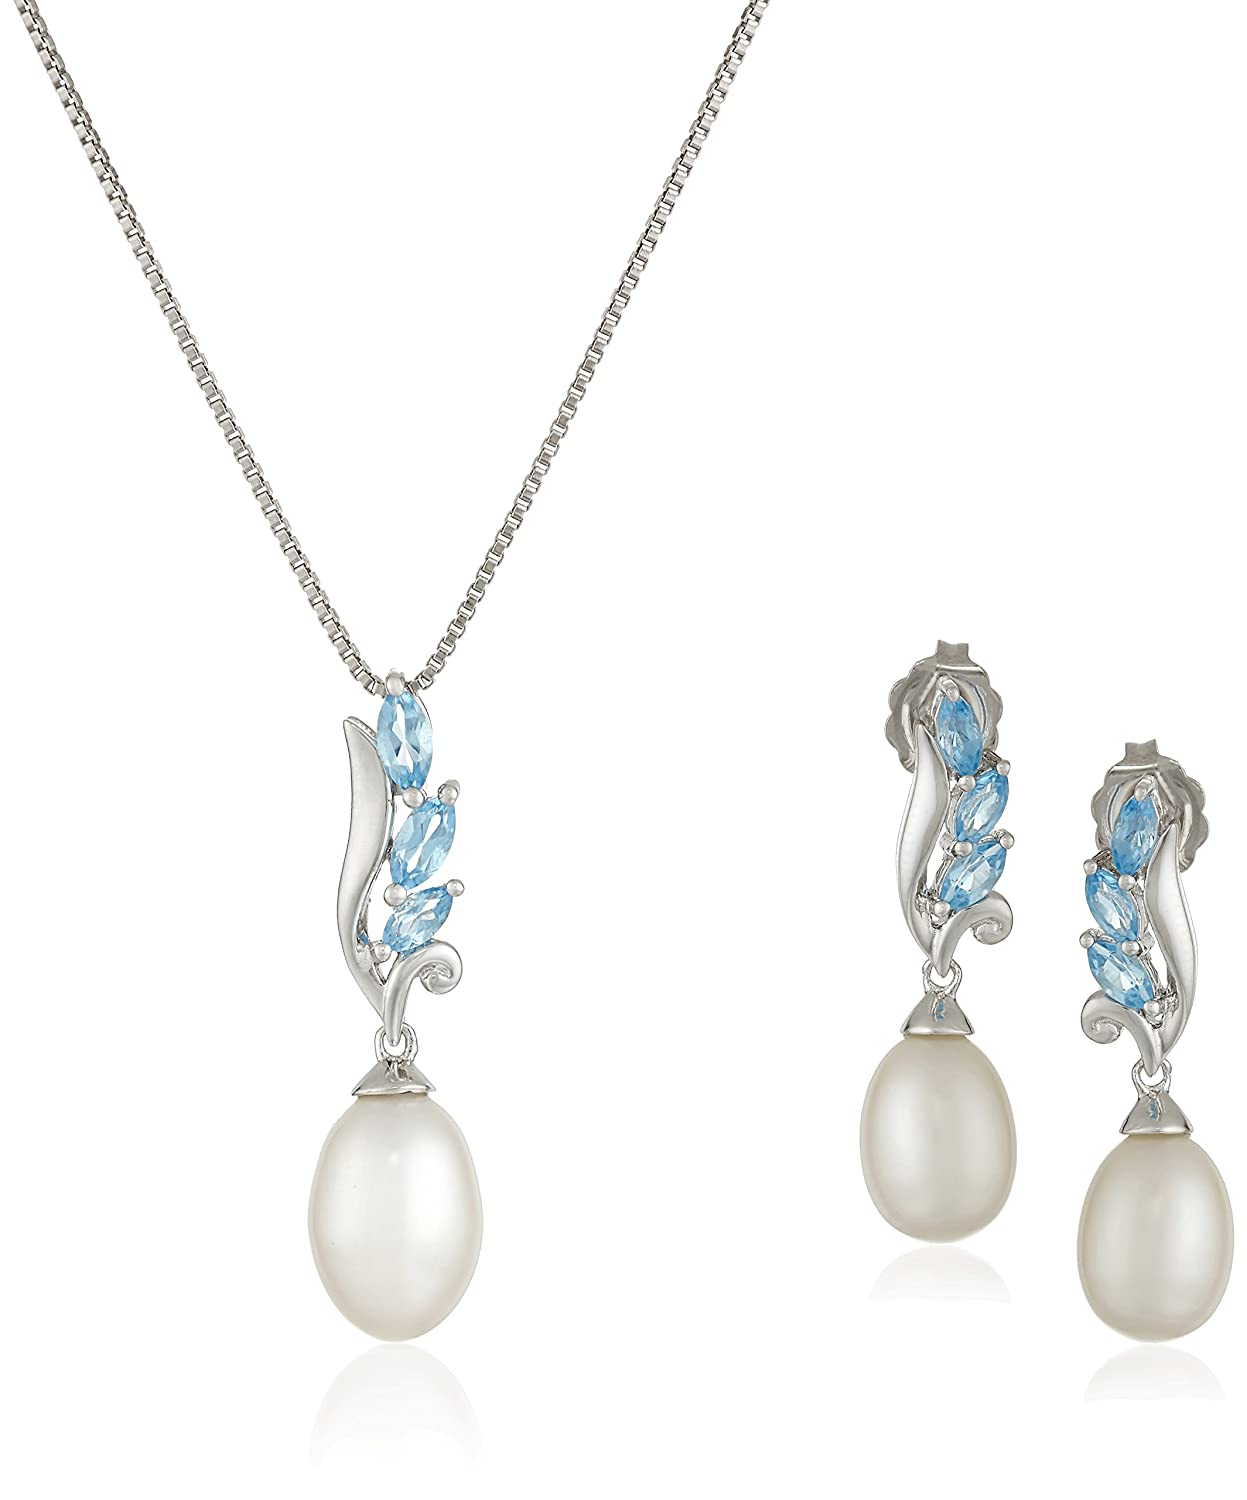 necklaces en topaz jewellery london necklace crown with pendants blue and topaasi product riipus